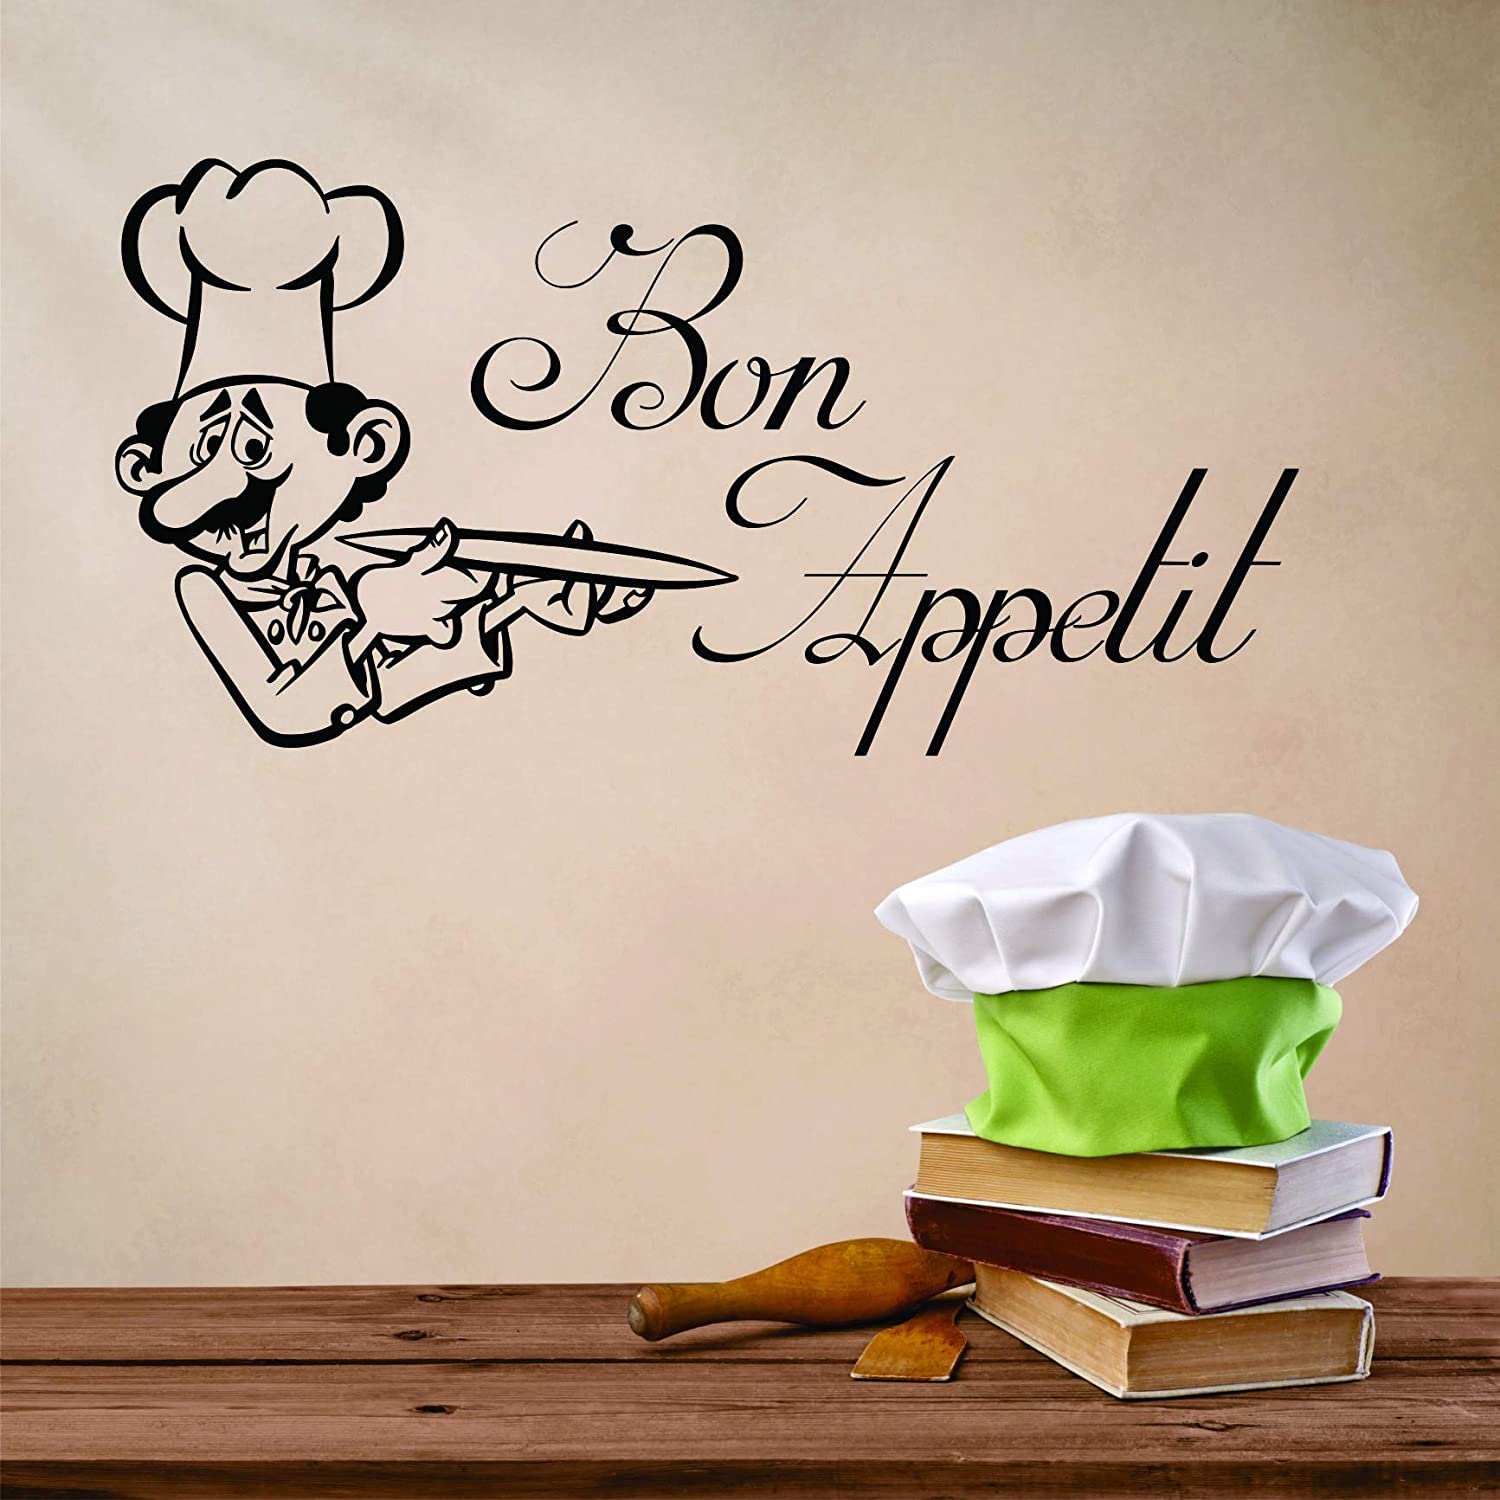 Top Selling Decals - Prices Reduced : Vinyl Wall Sticker : Bon Appetit Chef Kitchen Stylish Decor Bedroom Bathroom Living Room Picture Art Chef Bake Mural Kitchen Decor Cook Baker – Size:12X18Inch